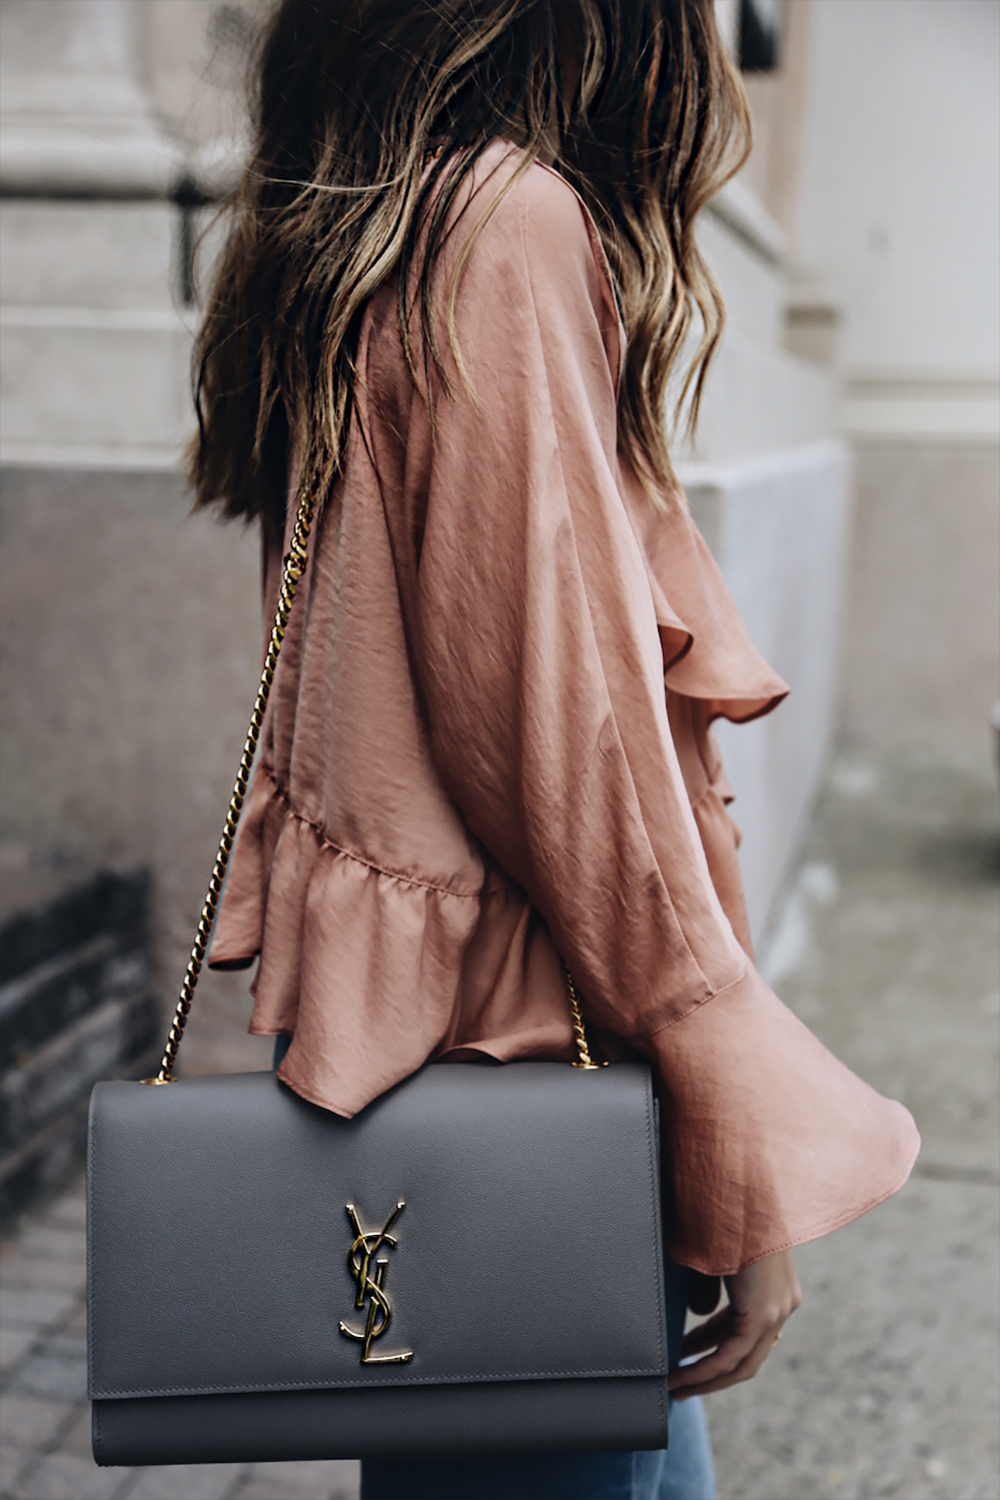 chained bags outfit